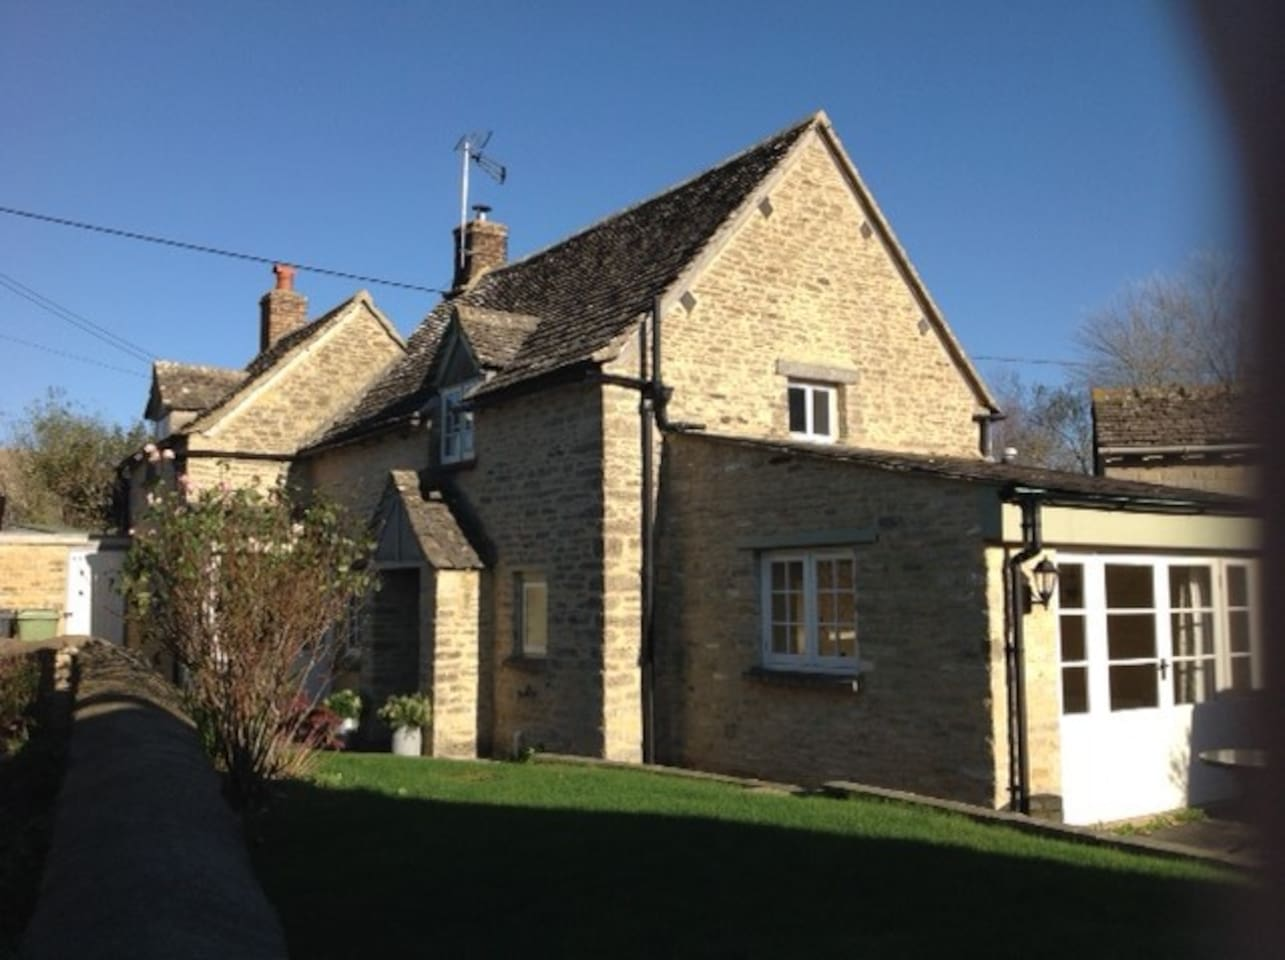 Grove house is a grade 2 listed, 2 bedroom detached cottage.